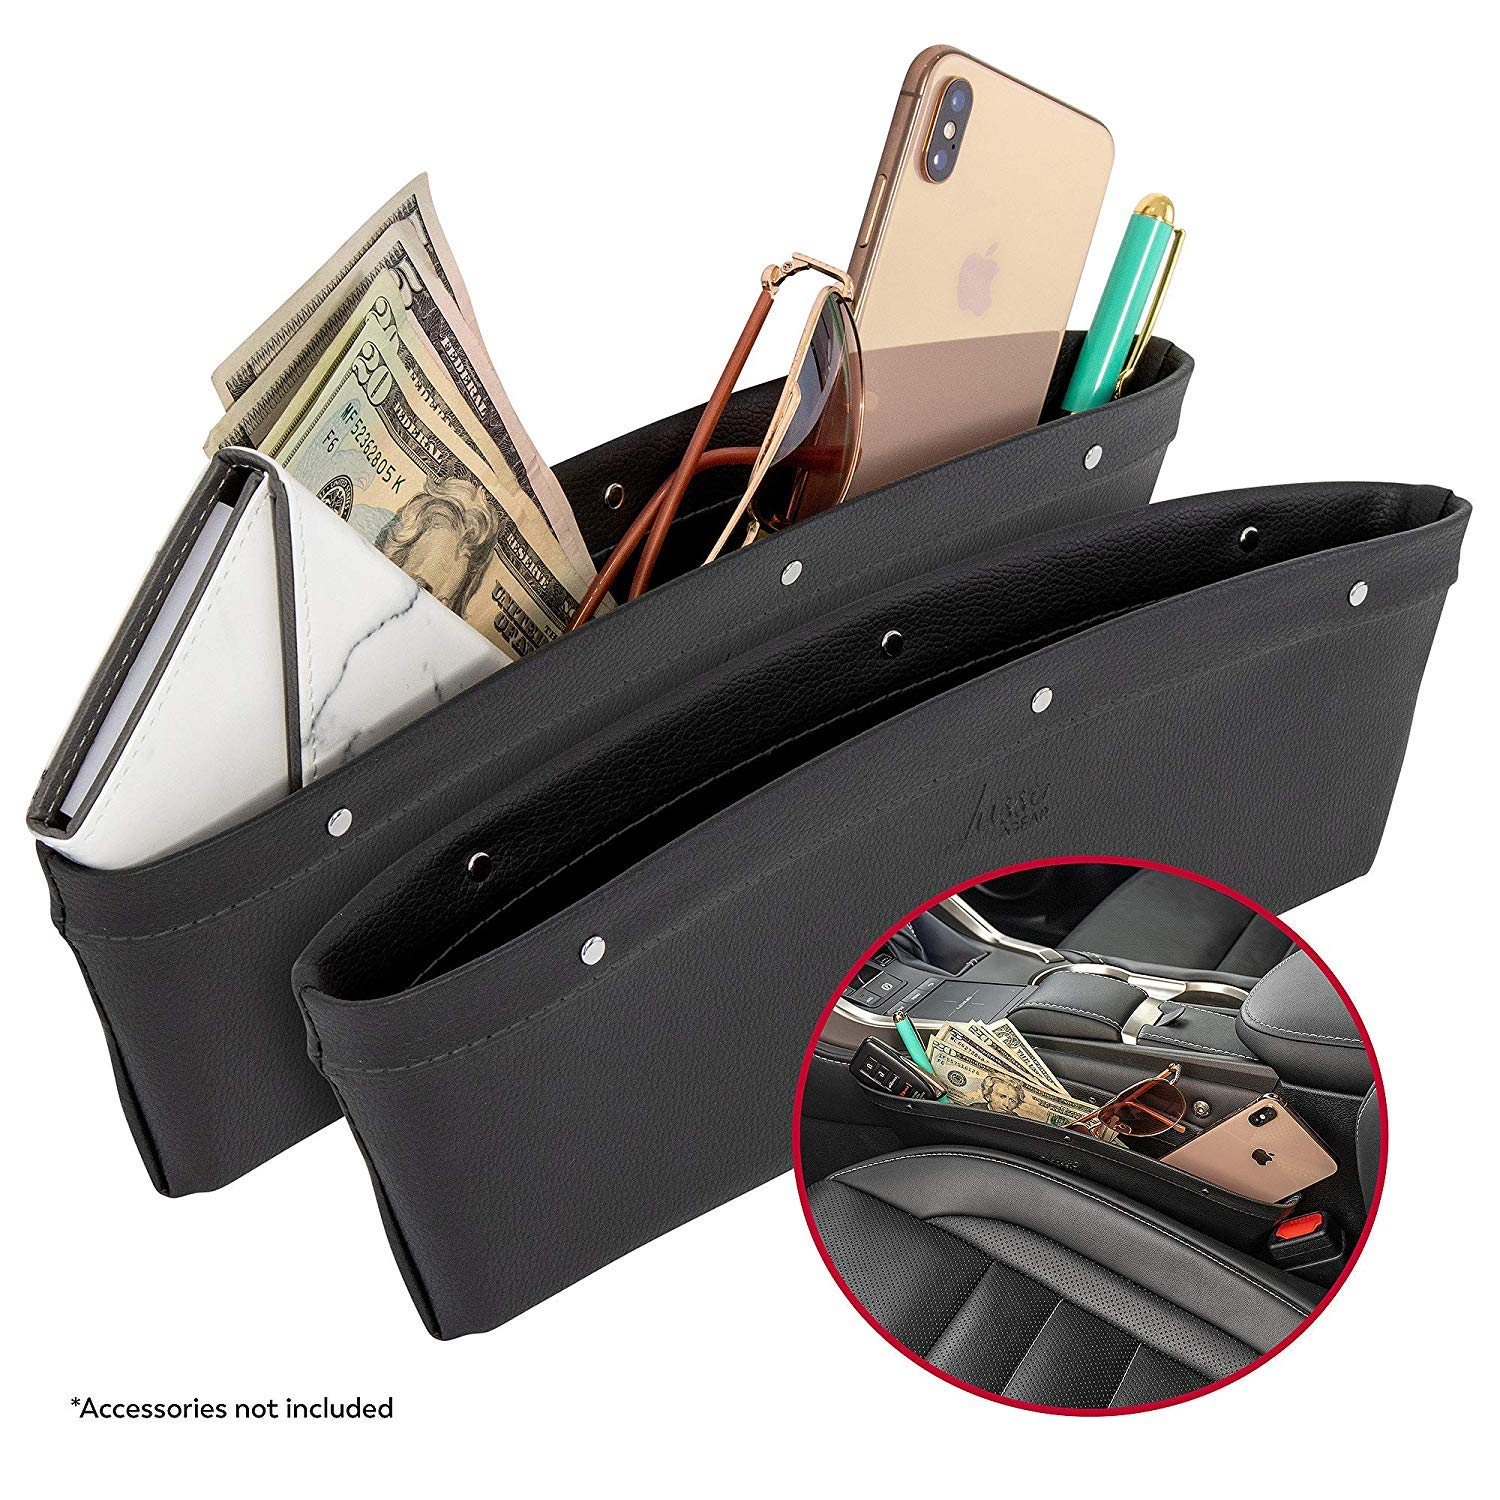 Lusso Gear Car Front Seat Organizer Mobile//Car Office Organizer Fits Any Car//Truck Storage for Laptop//iPad//Office Supplies /& More Strong /& Durable Also for Law Enforcement//Police//Patrol Bag